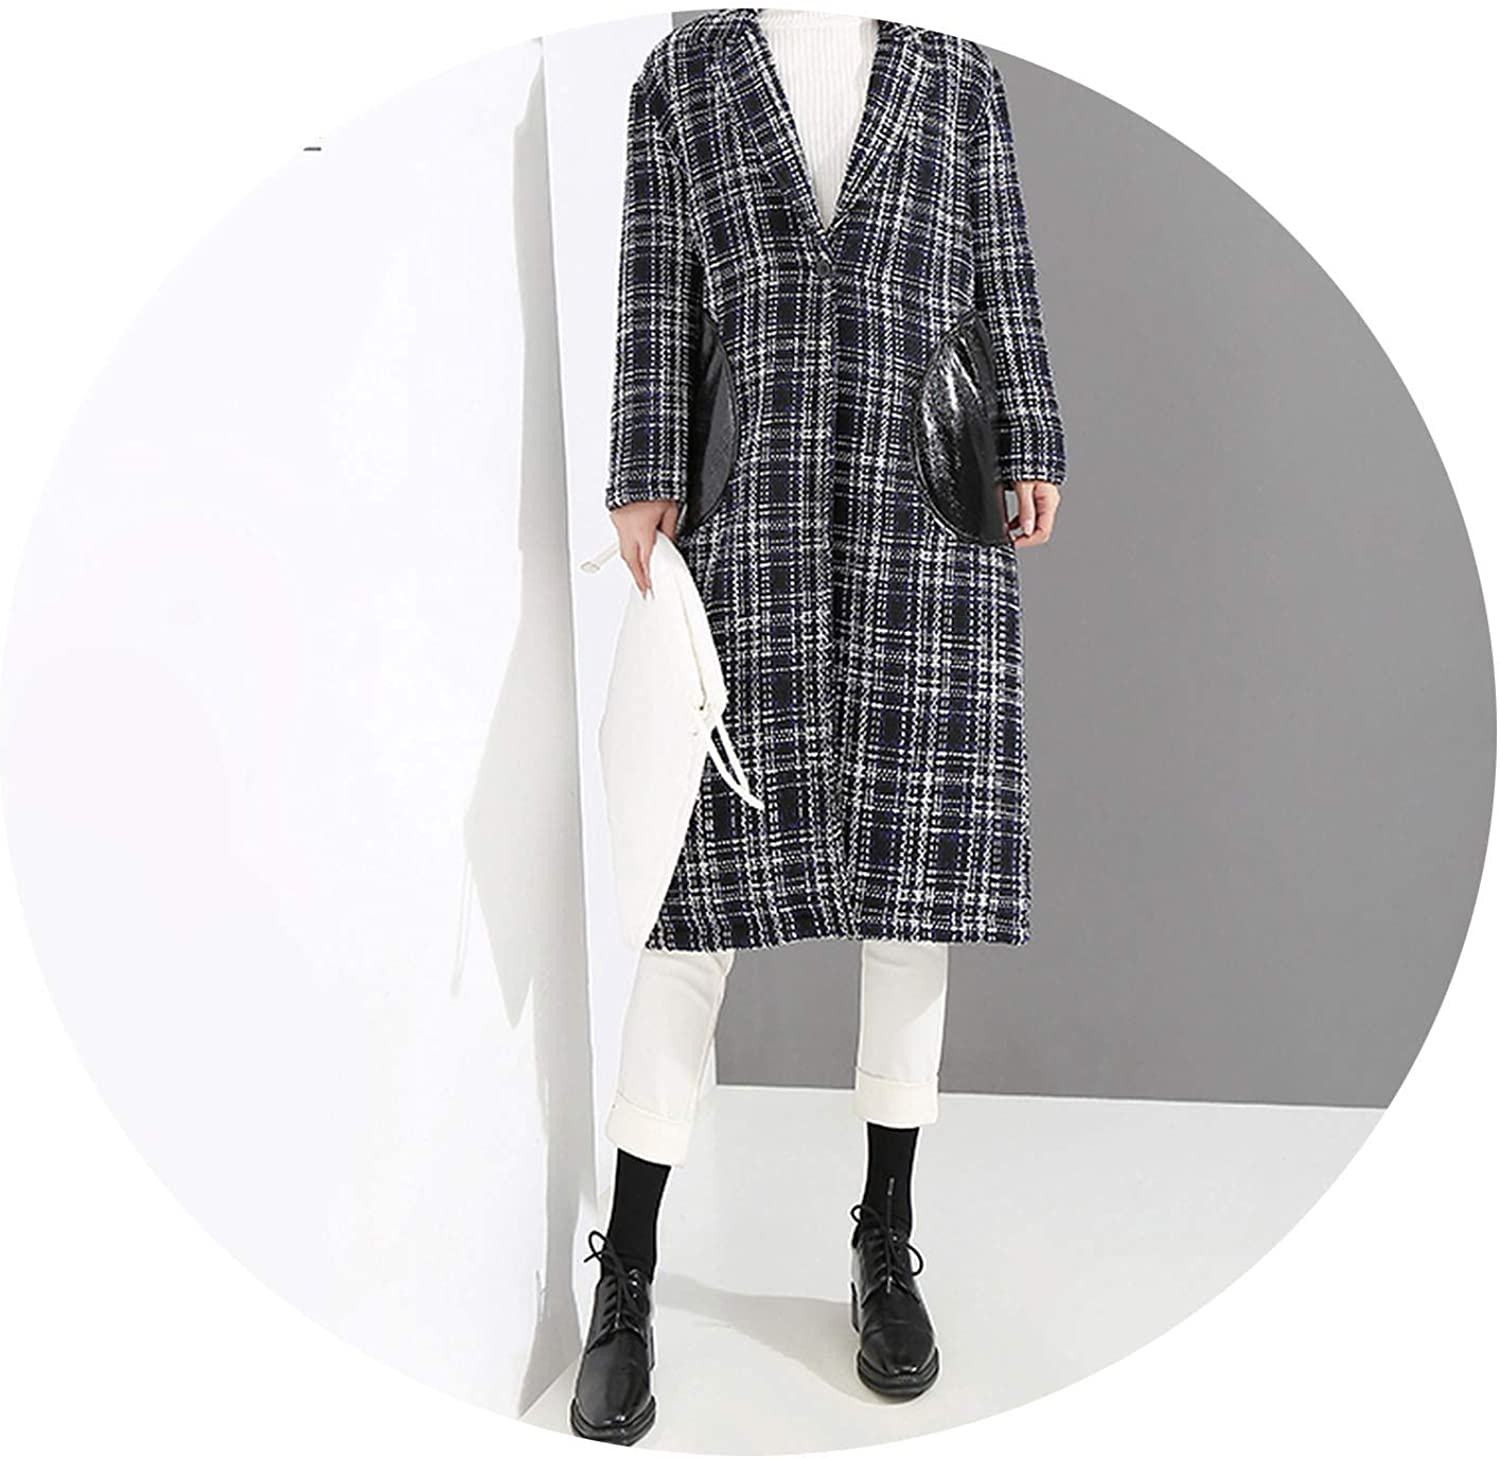 AllAboutUs Women Long Black Blend Coat with Pockets Lapel Plaid Casual Wear Long Jacket Overcoat 4097